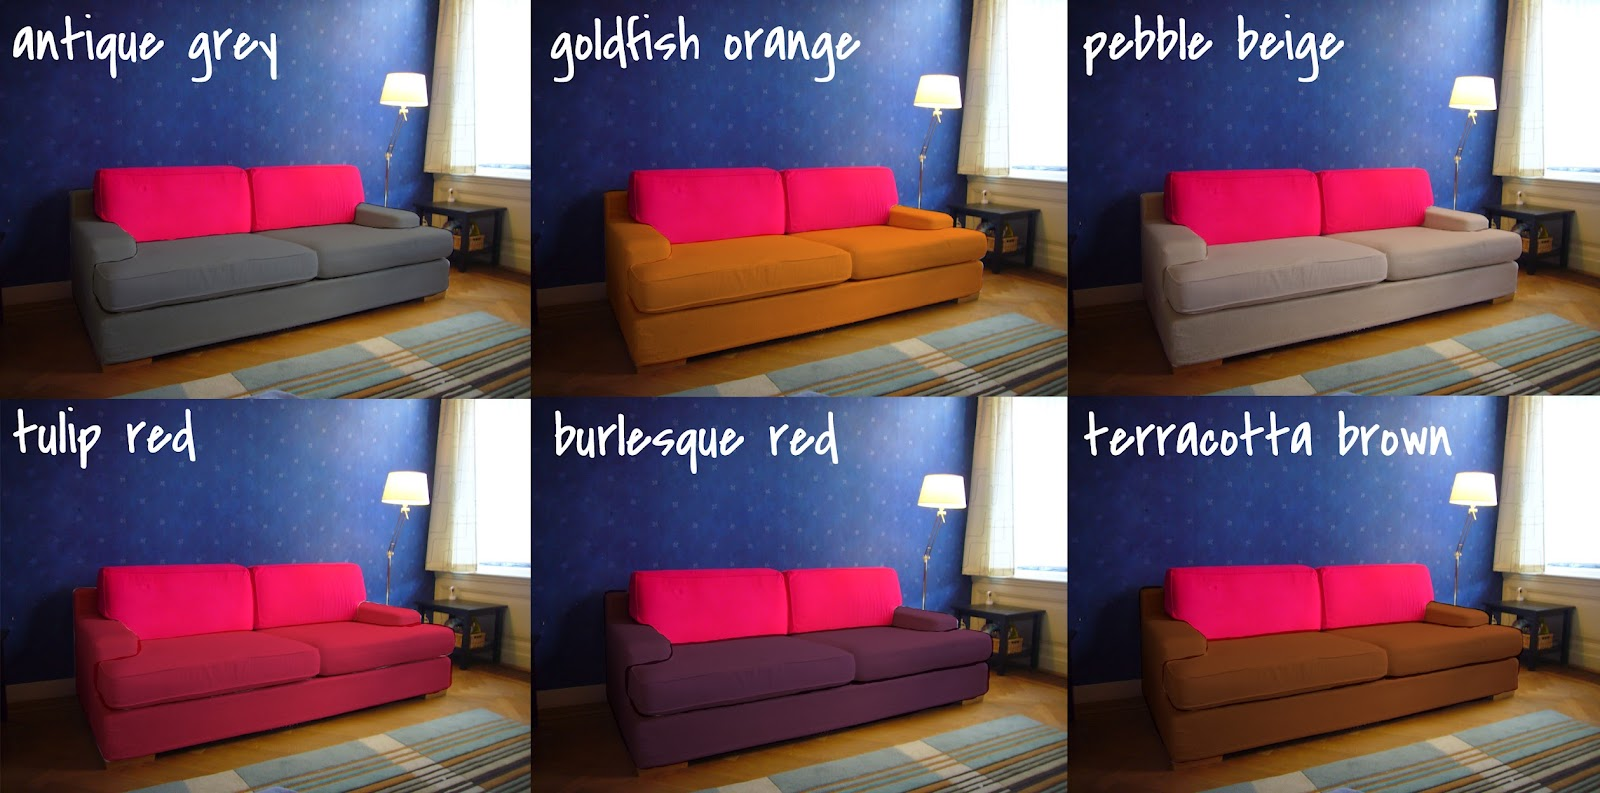 burlesque pink sofa grey canada aesthetic fauna brighter choices virtual dyeing round twee